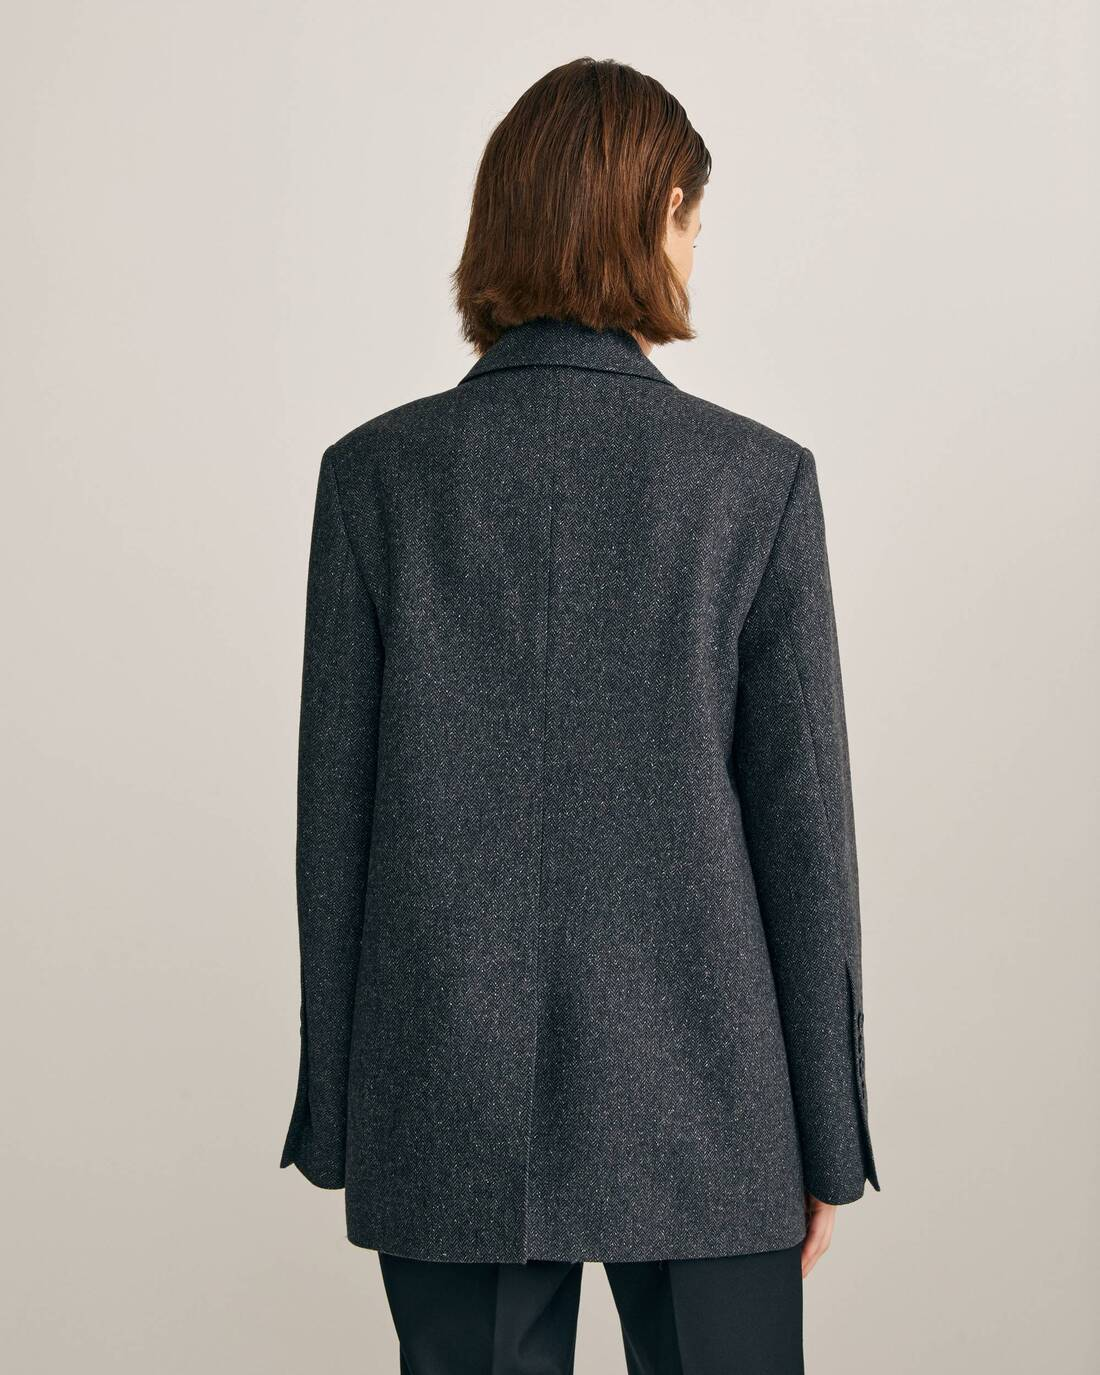 Single-breasted tweed jacket with contrast stitching